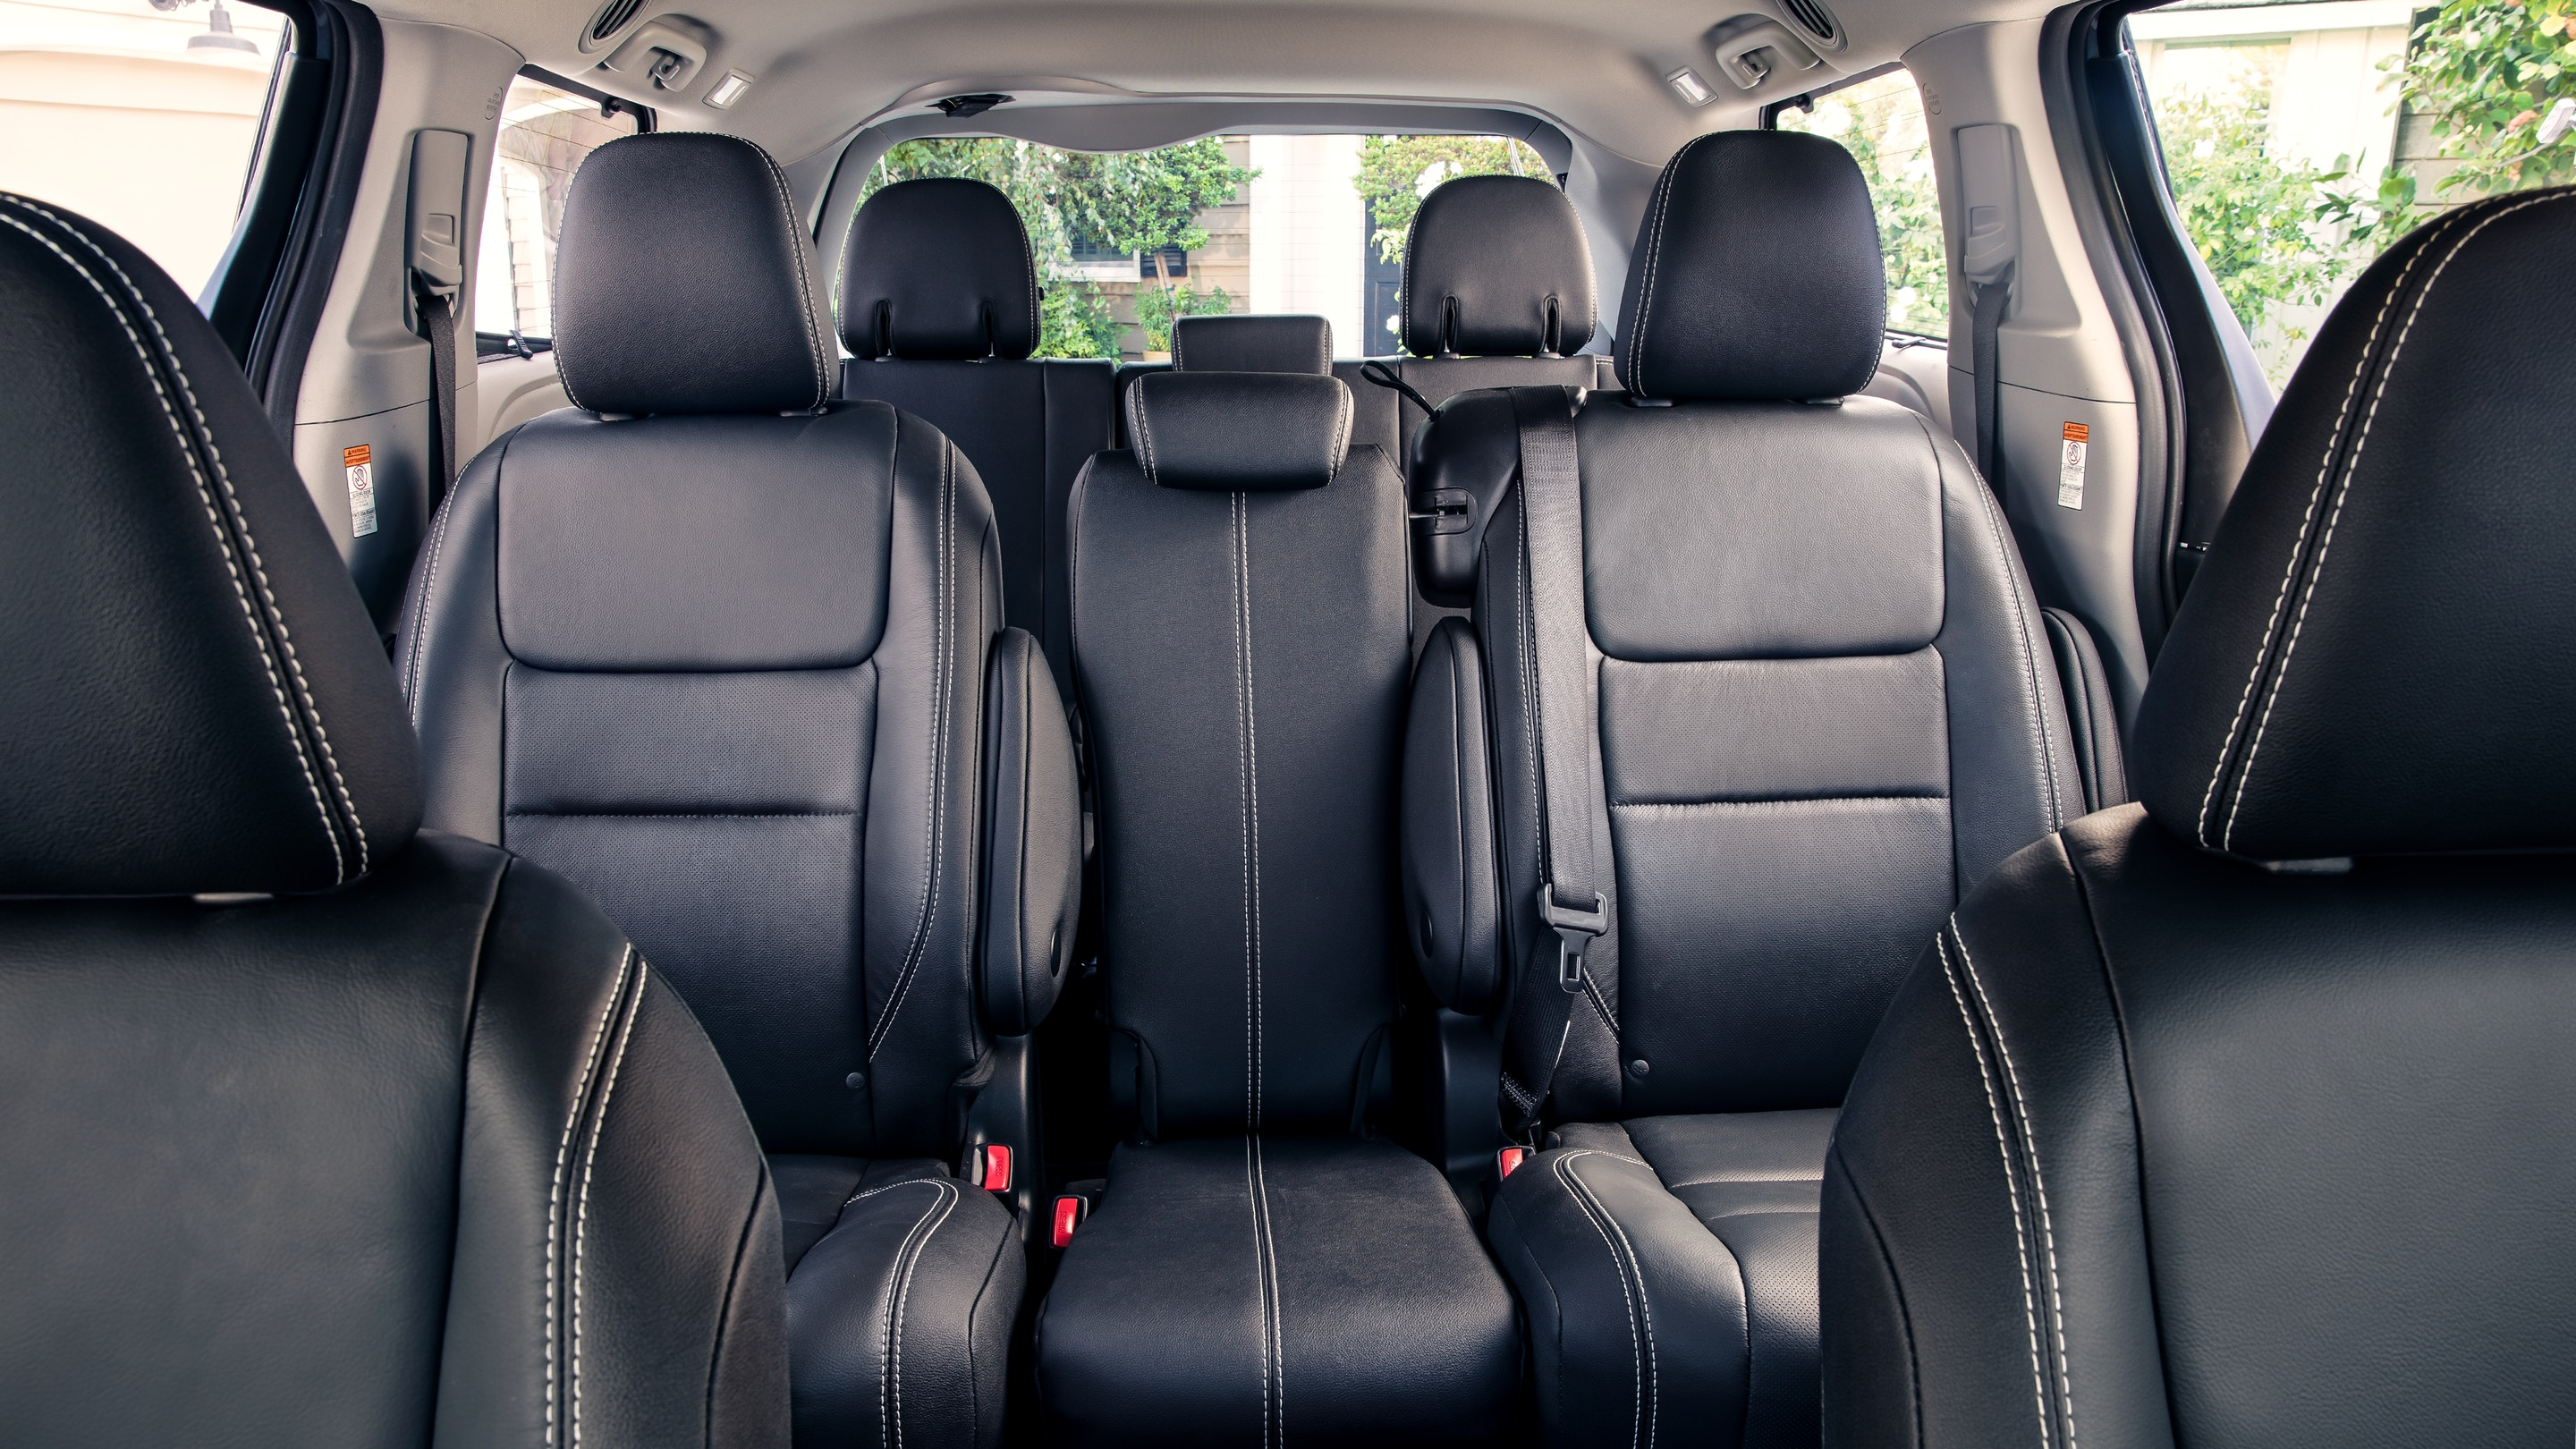 2019 Sienna Seating